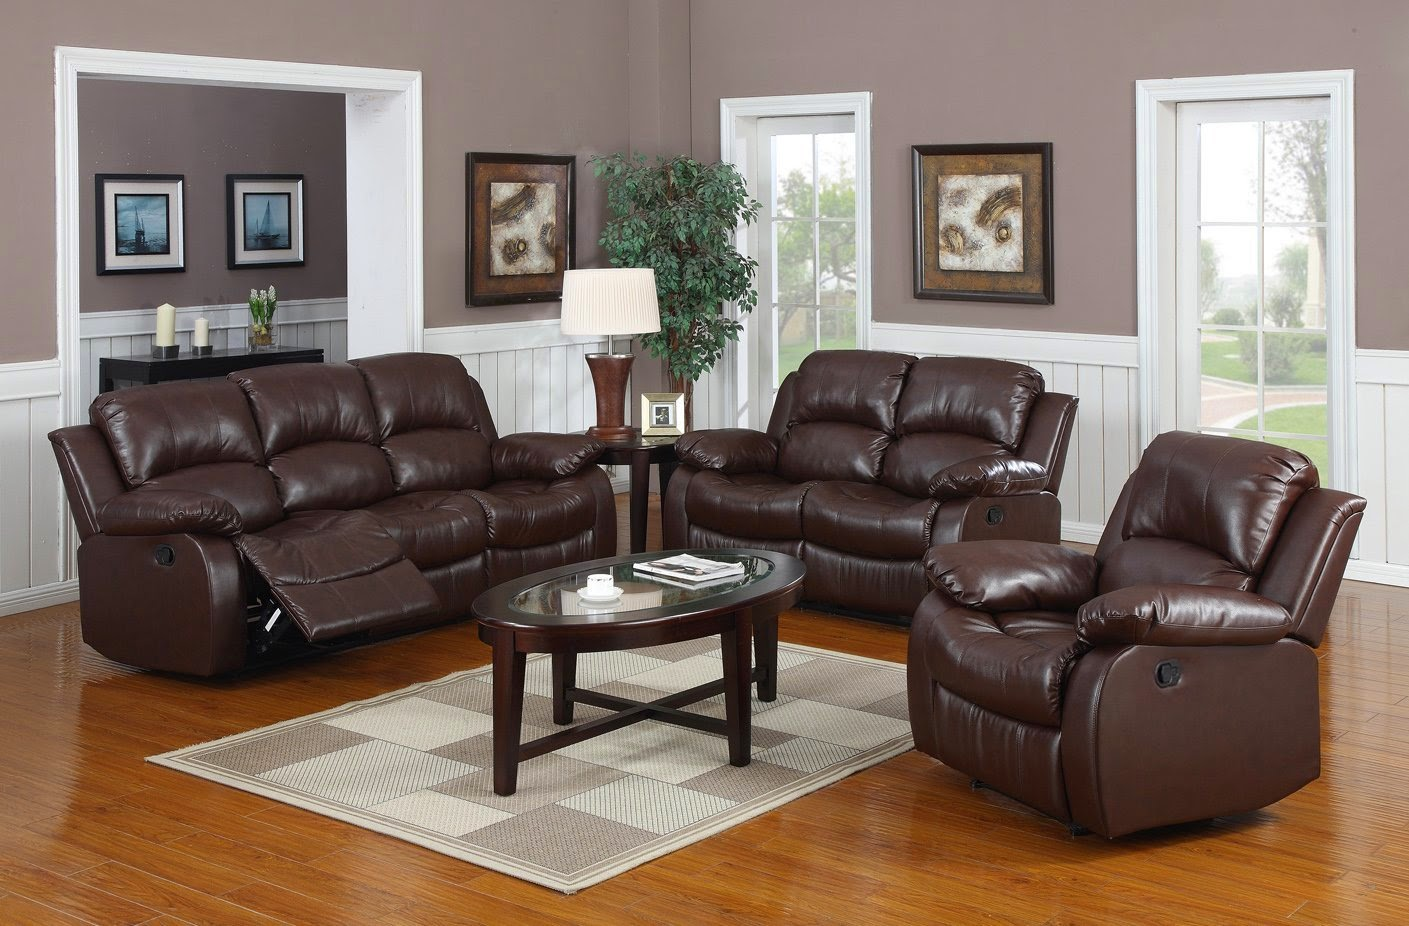 The Best Reclining Leather Sofa Reviews Recliner